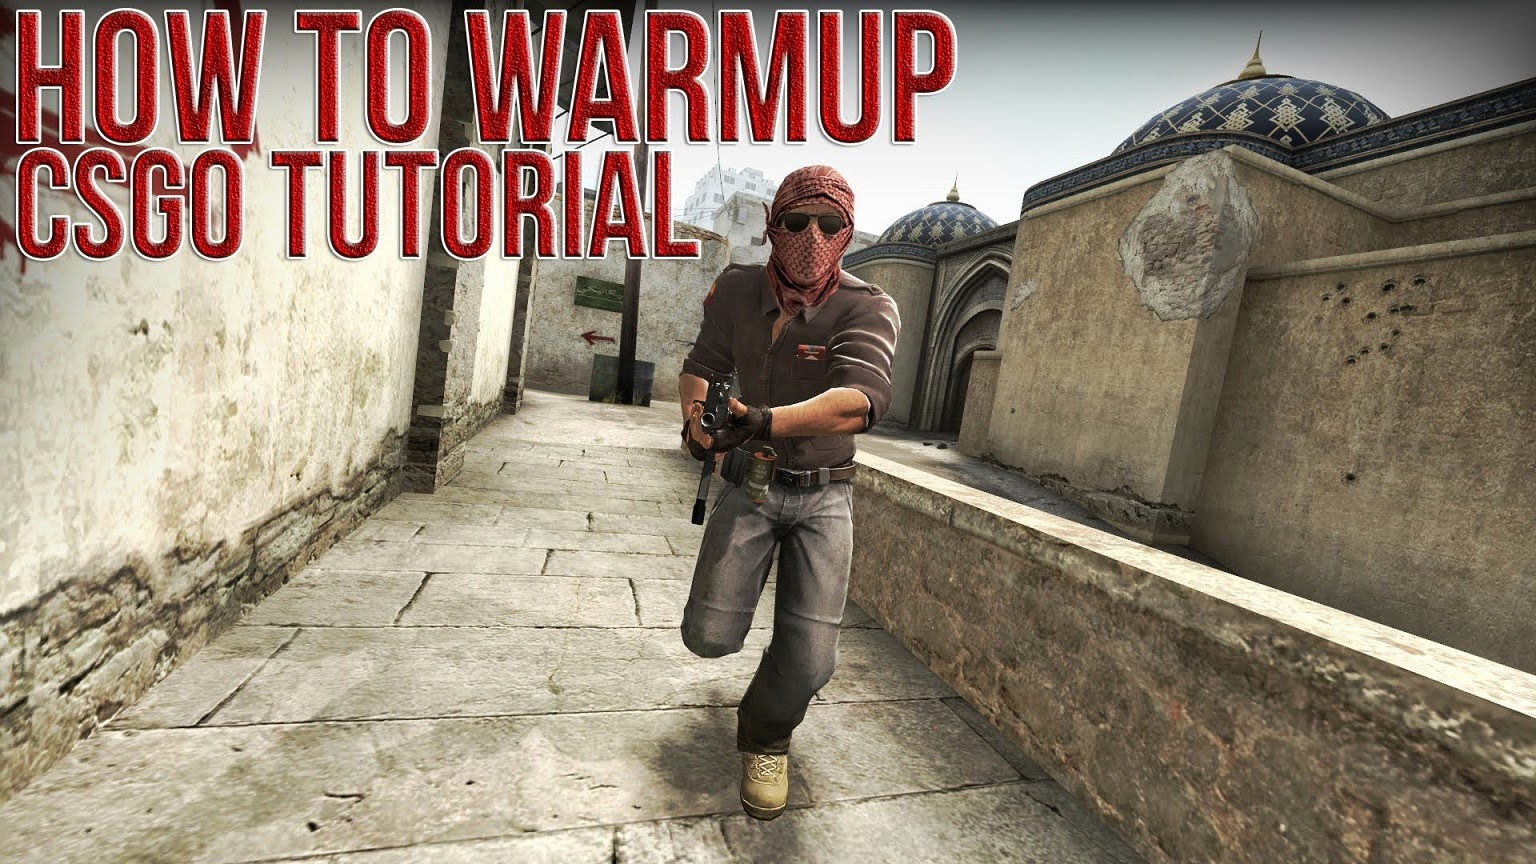 CStrike Global Offensive - Tutorials: March 2015